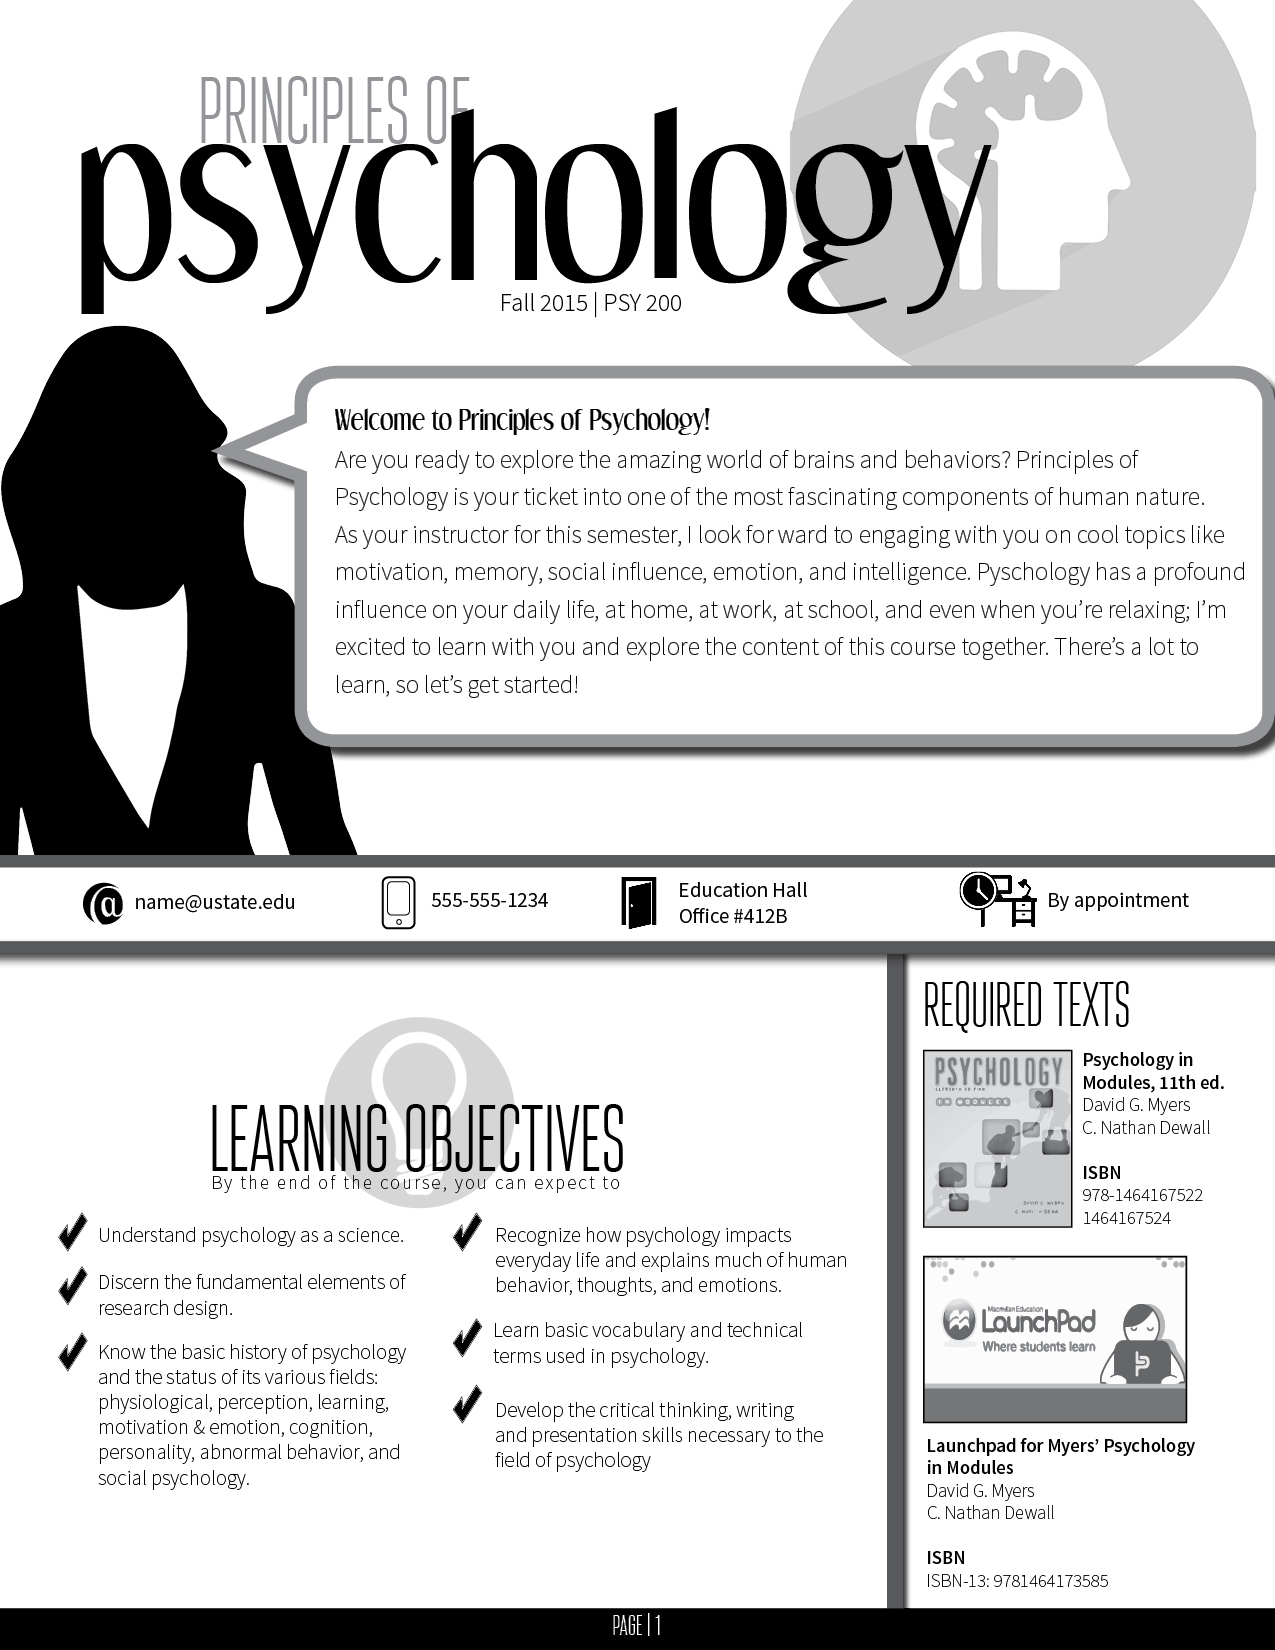 How to Turn Your Syllabus into an Infographic – The Visual